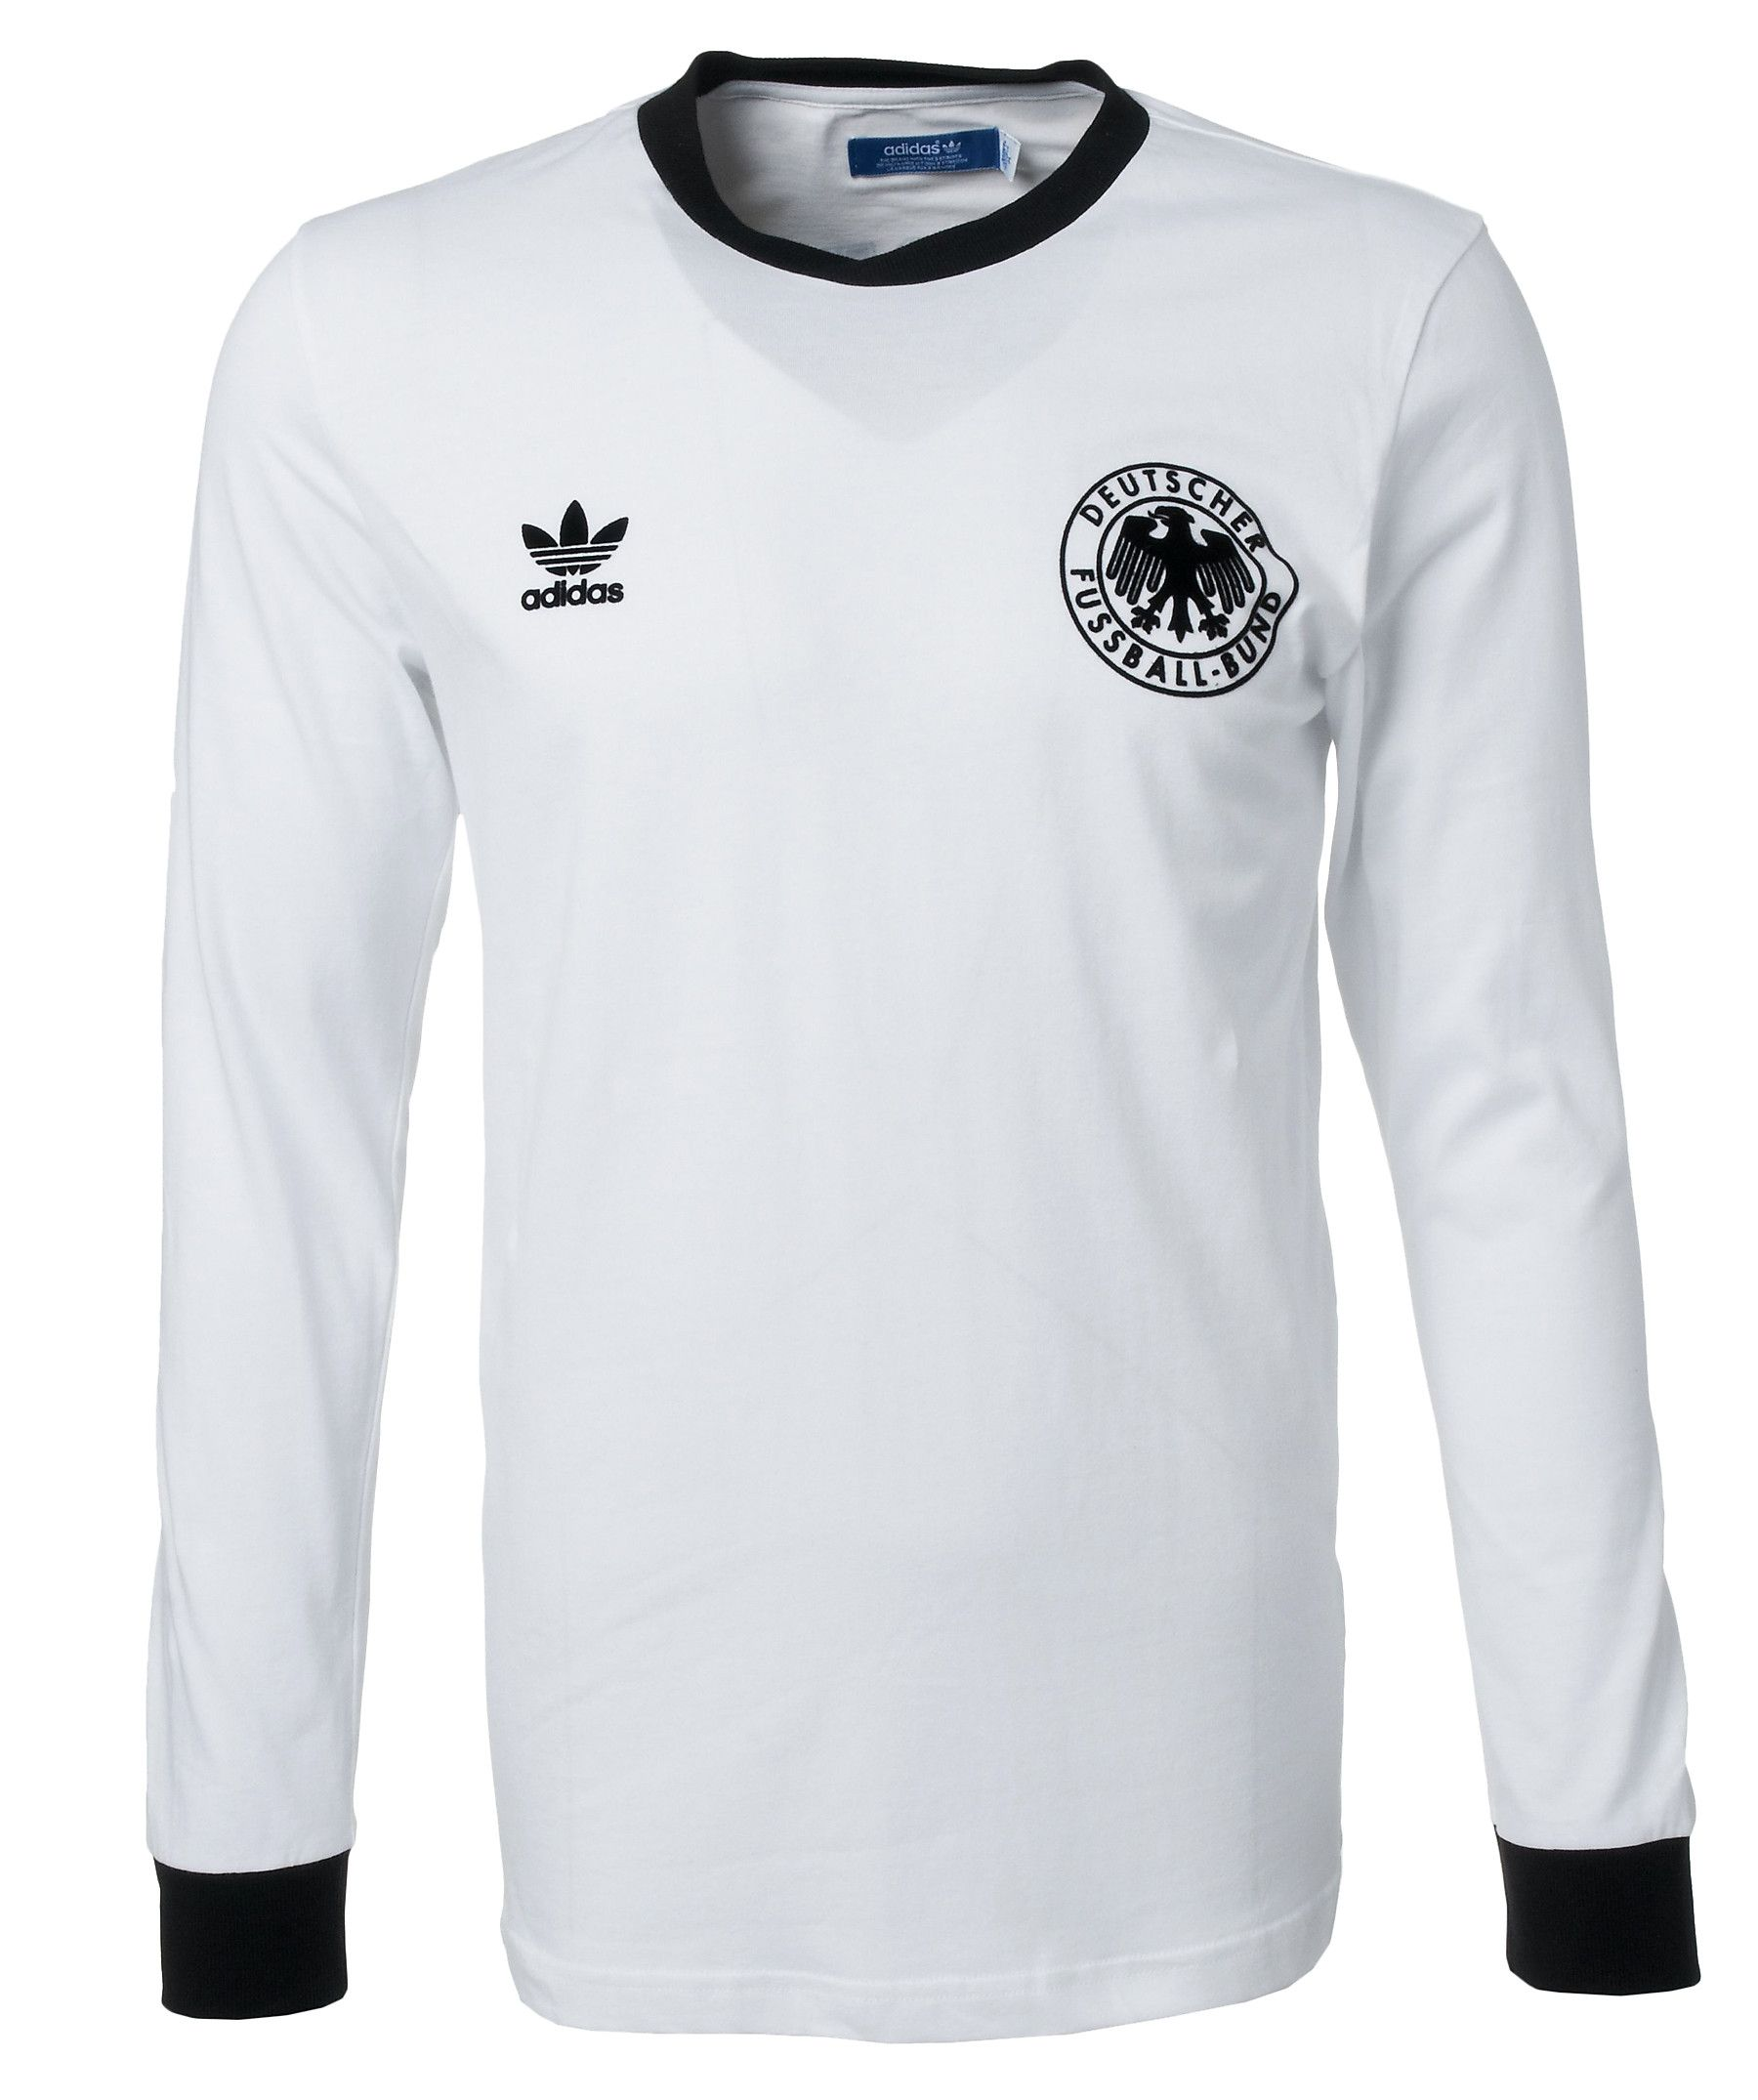 c11729f9b5 DFB Retro Longsleeve by adidas  soccer  training  game